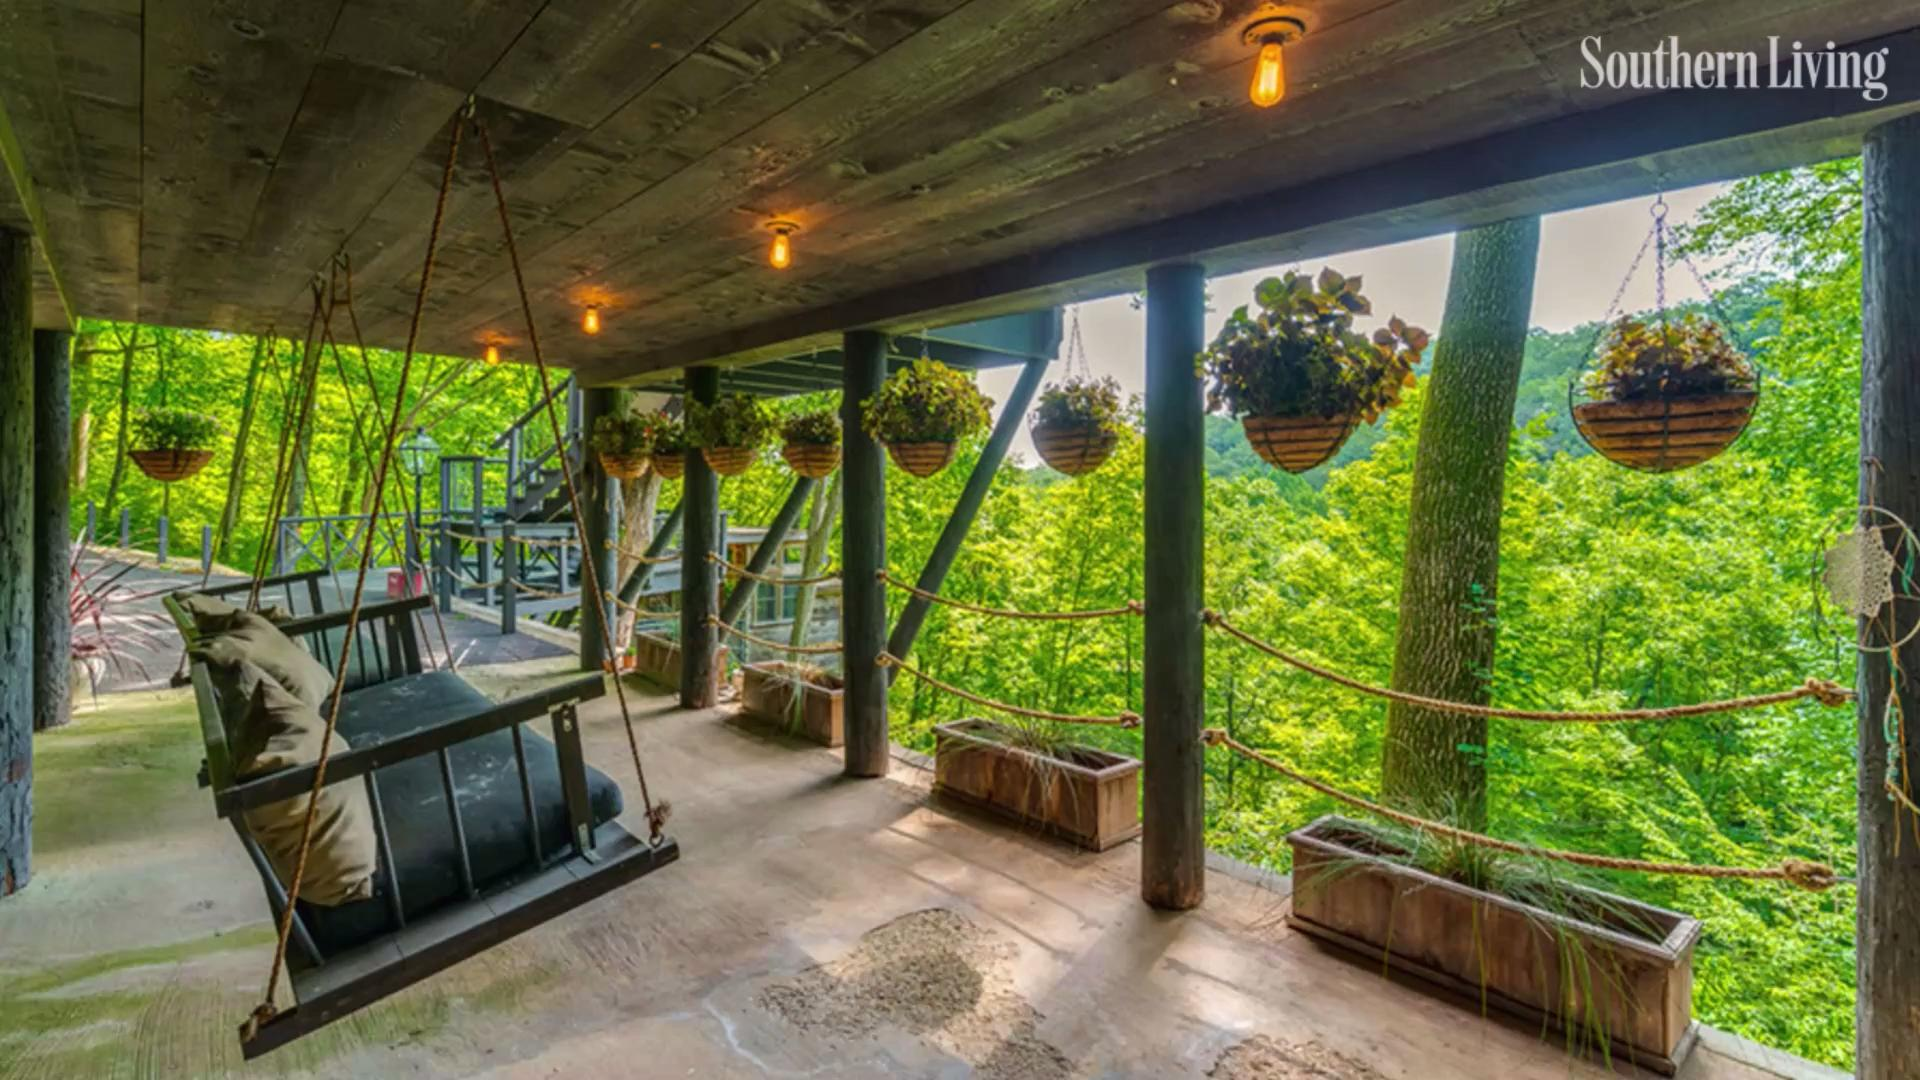 The Compound is Complete With Sprawling Views, a Treehouse, and a Party Barn